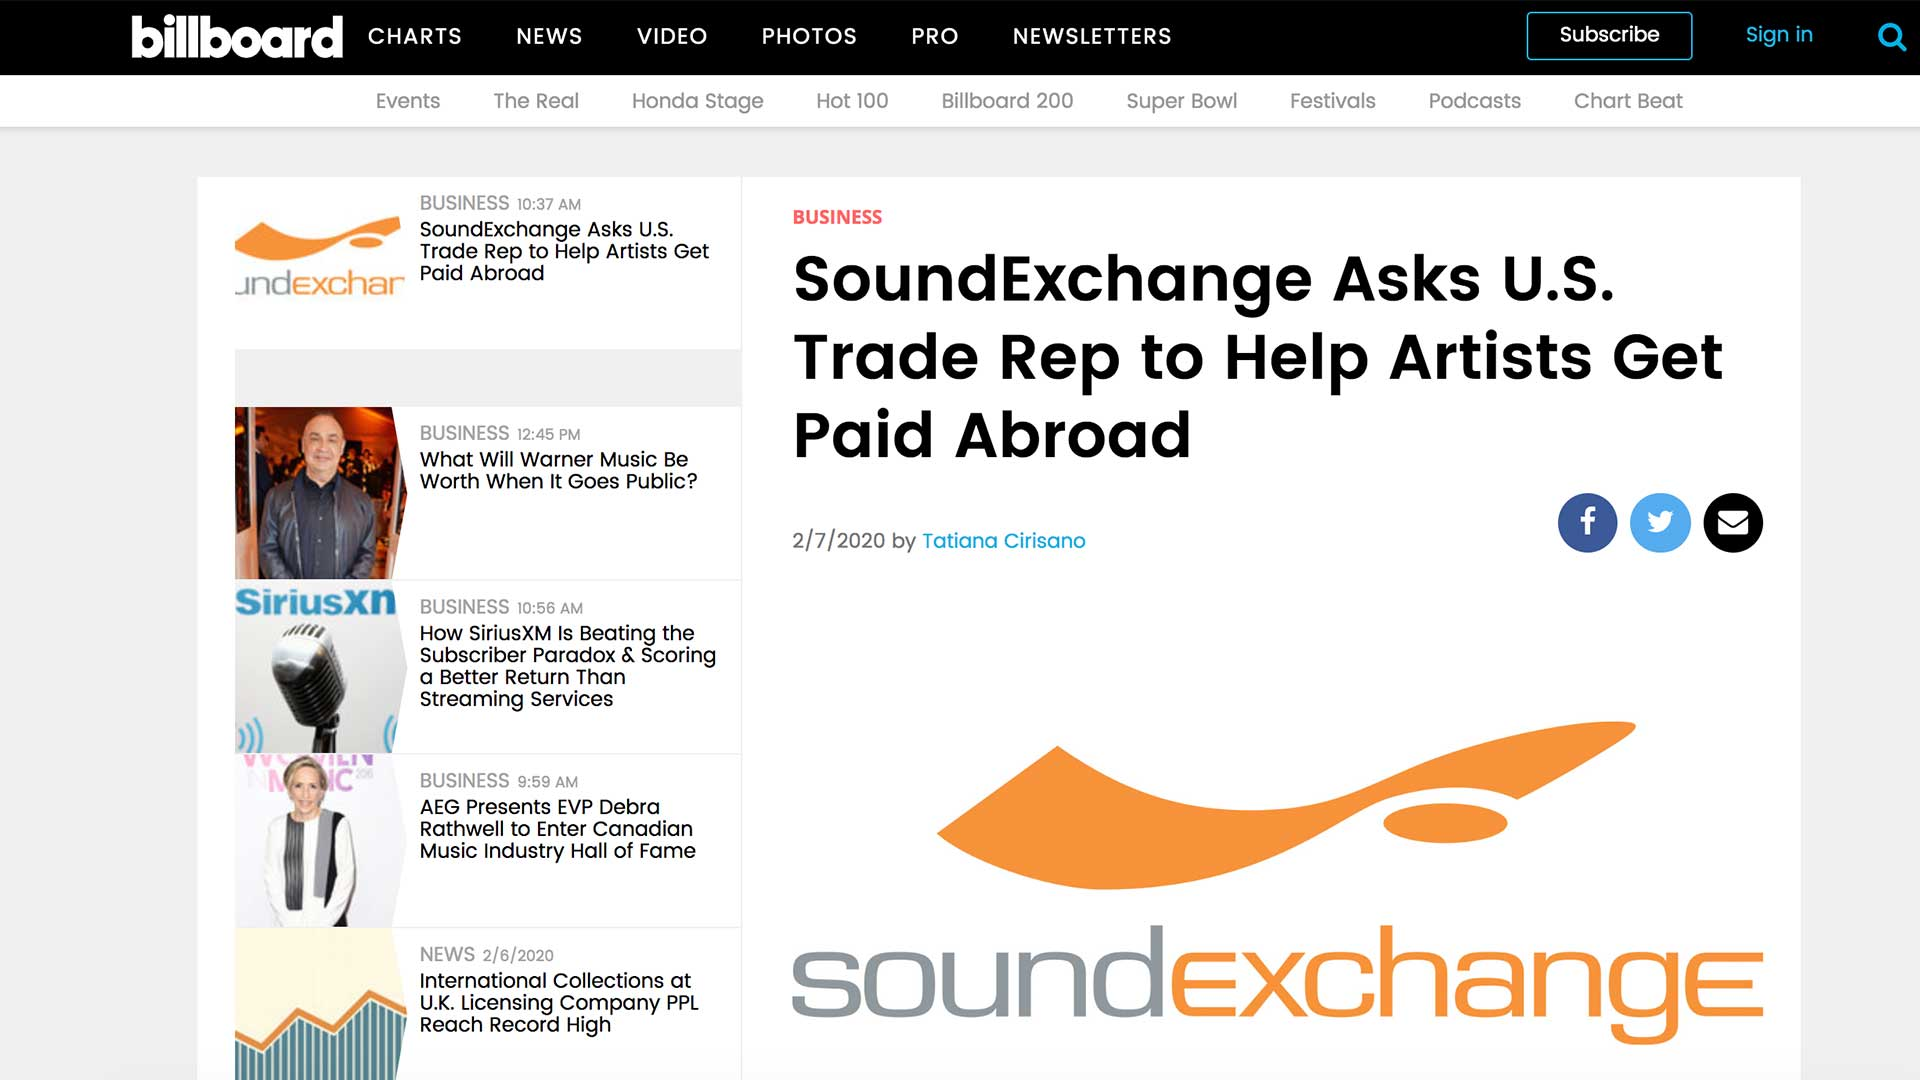 Fairness Rocks News SoundExchange Asks U.S. Trade Rep to Help Artists Get Paid Abroad